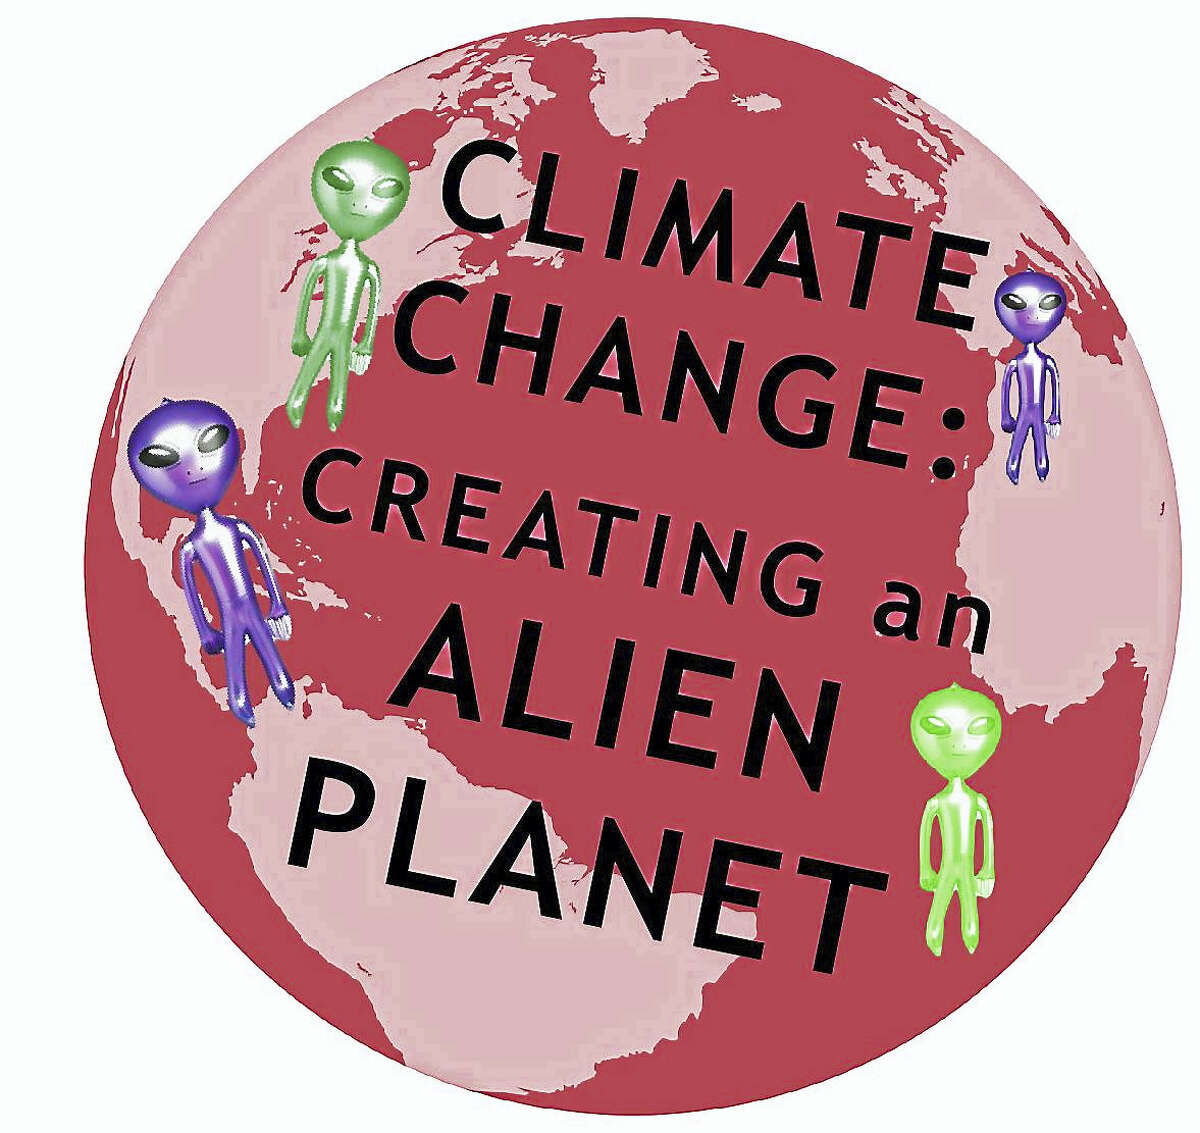 Healthy City/Healthy Climate Challenge is encouraging New Haven residents to talk more about global warming and climate change this month.